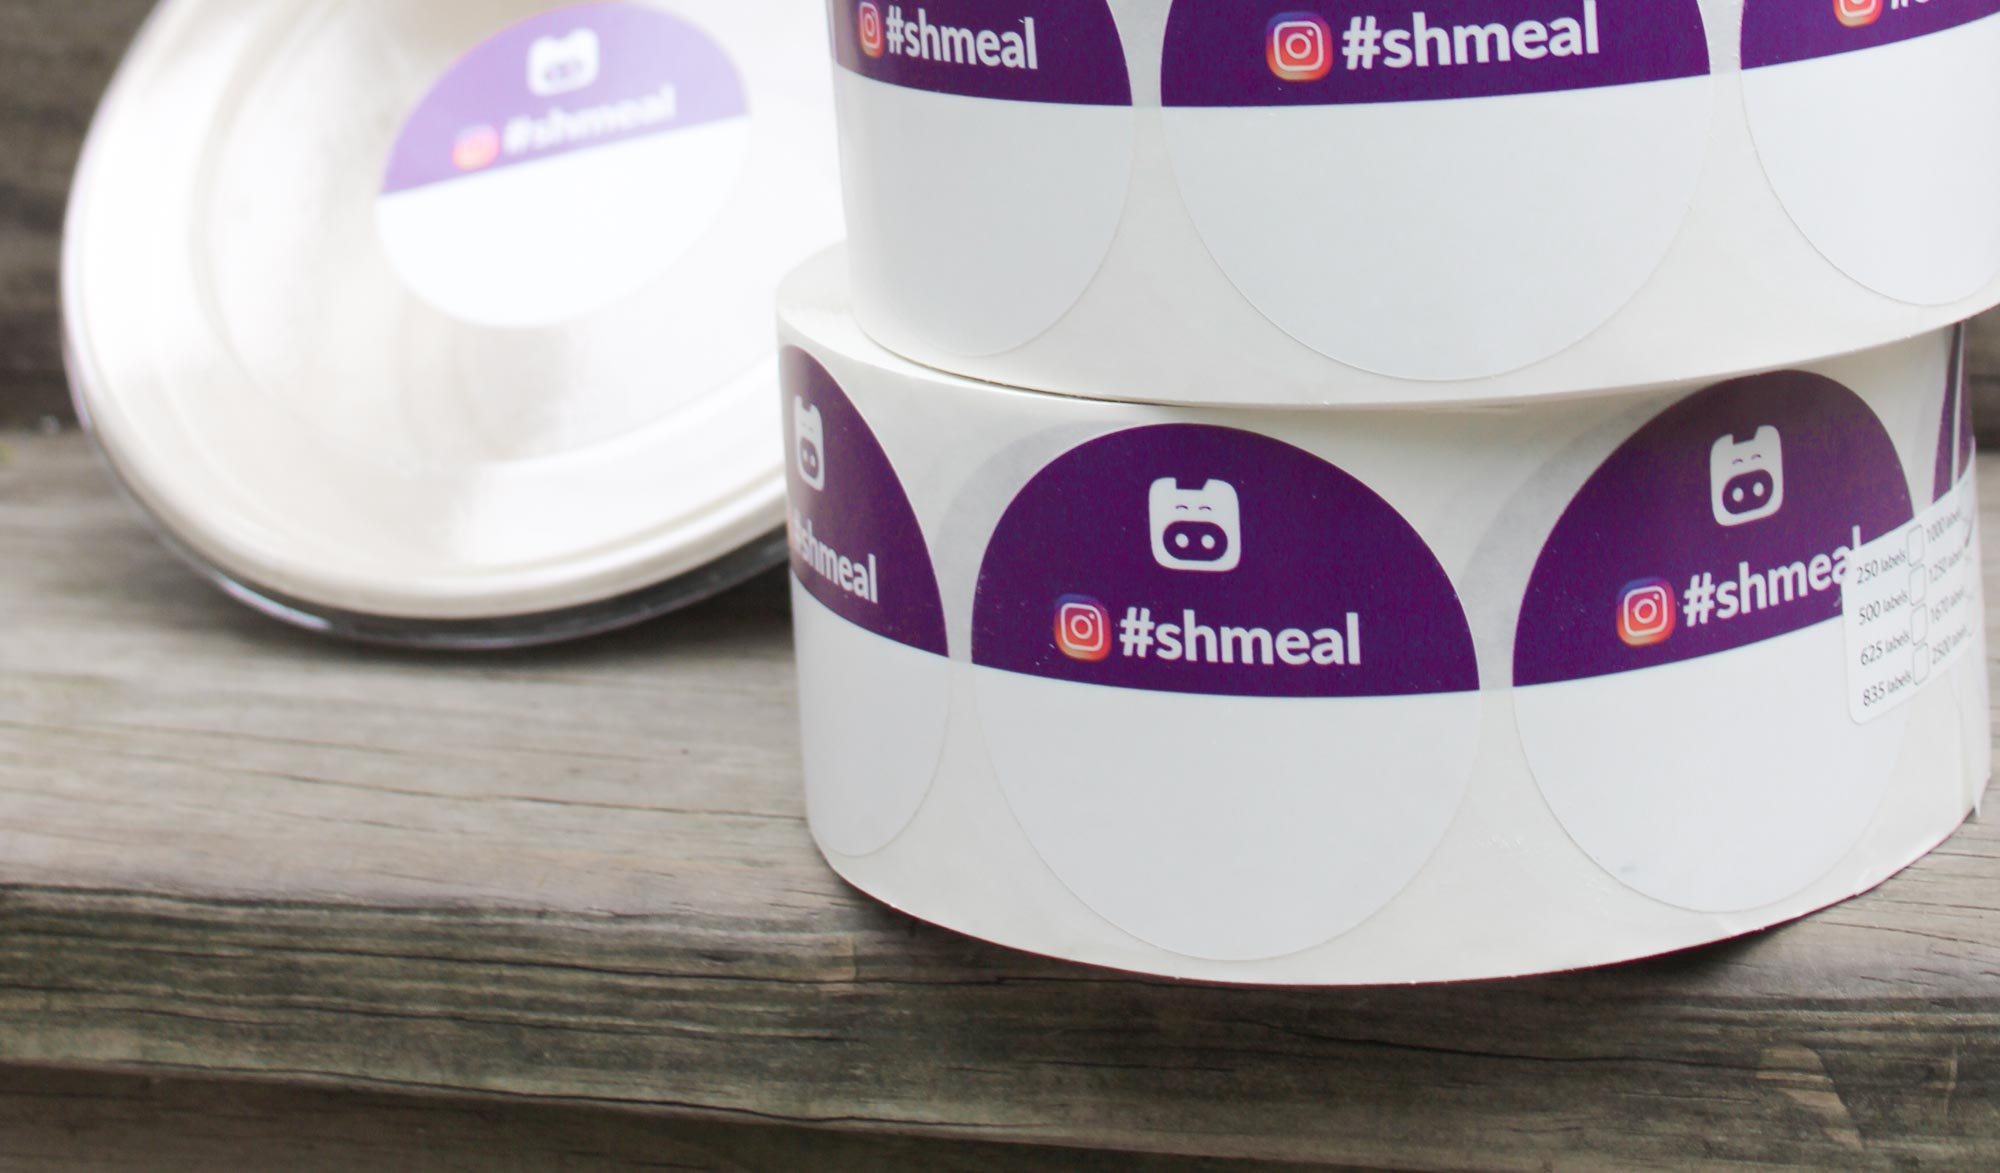 A roll of Shmeal stickers